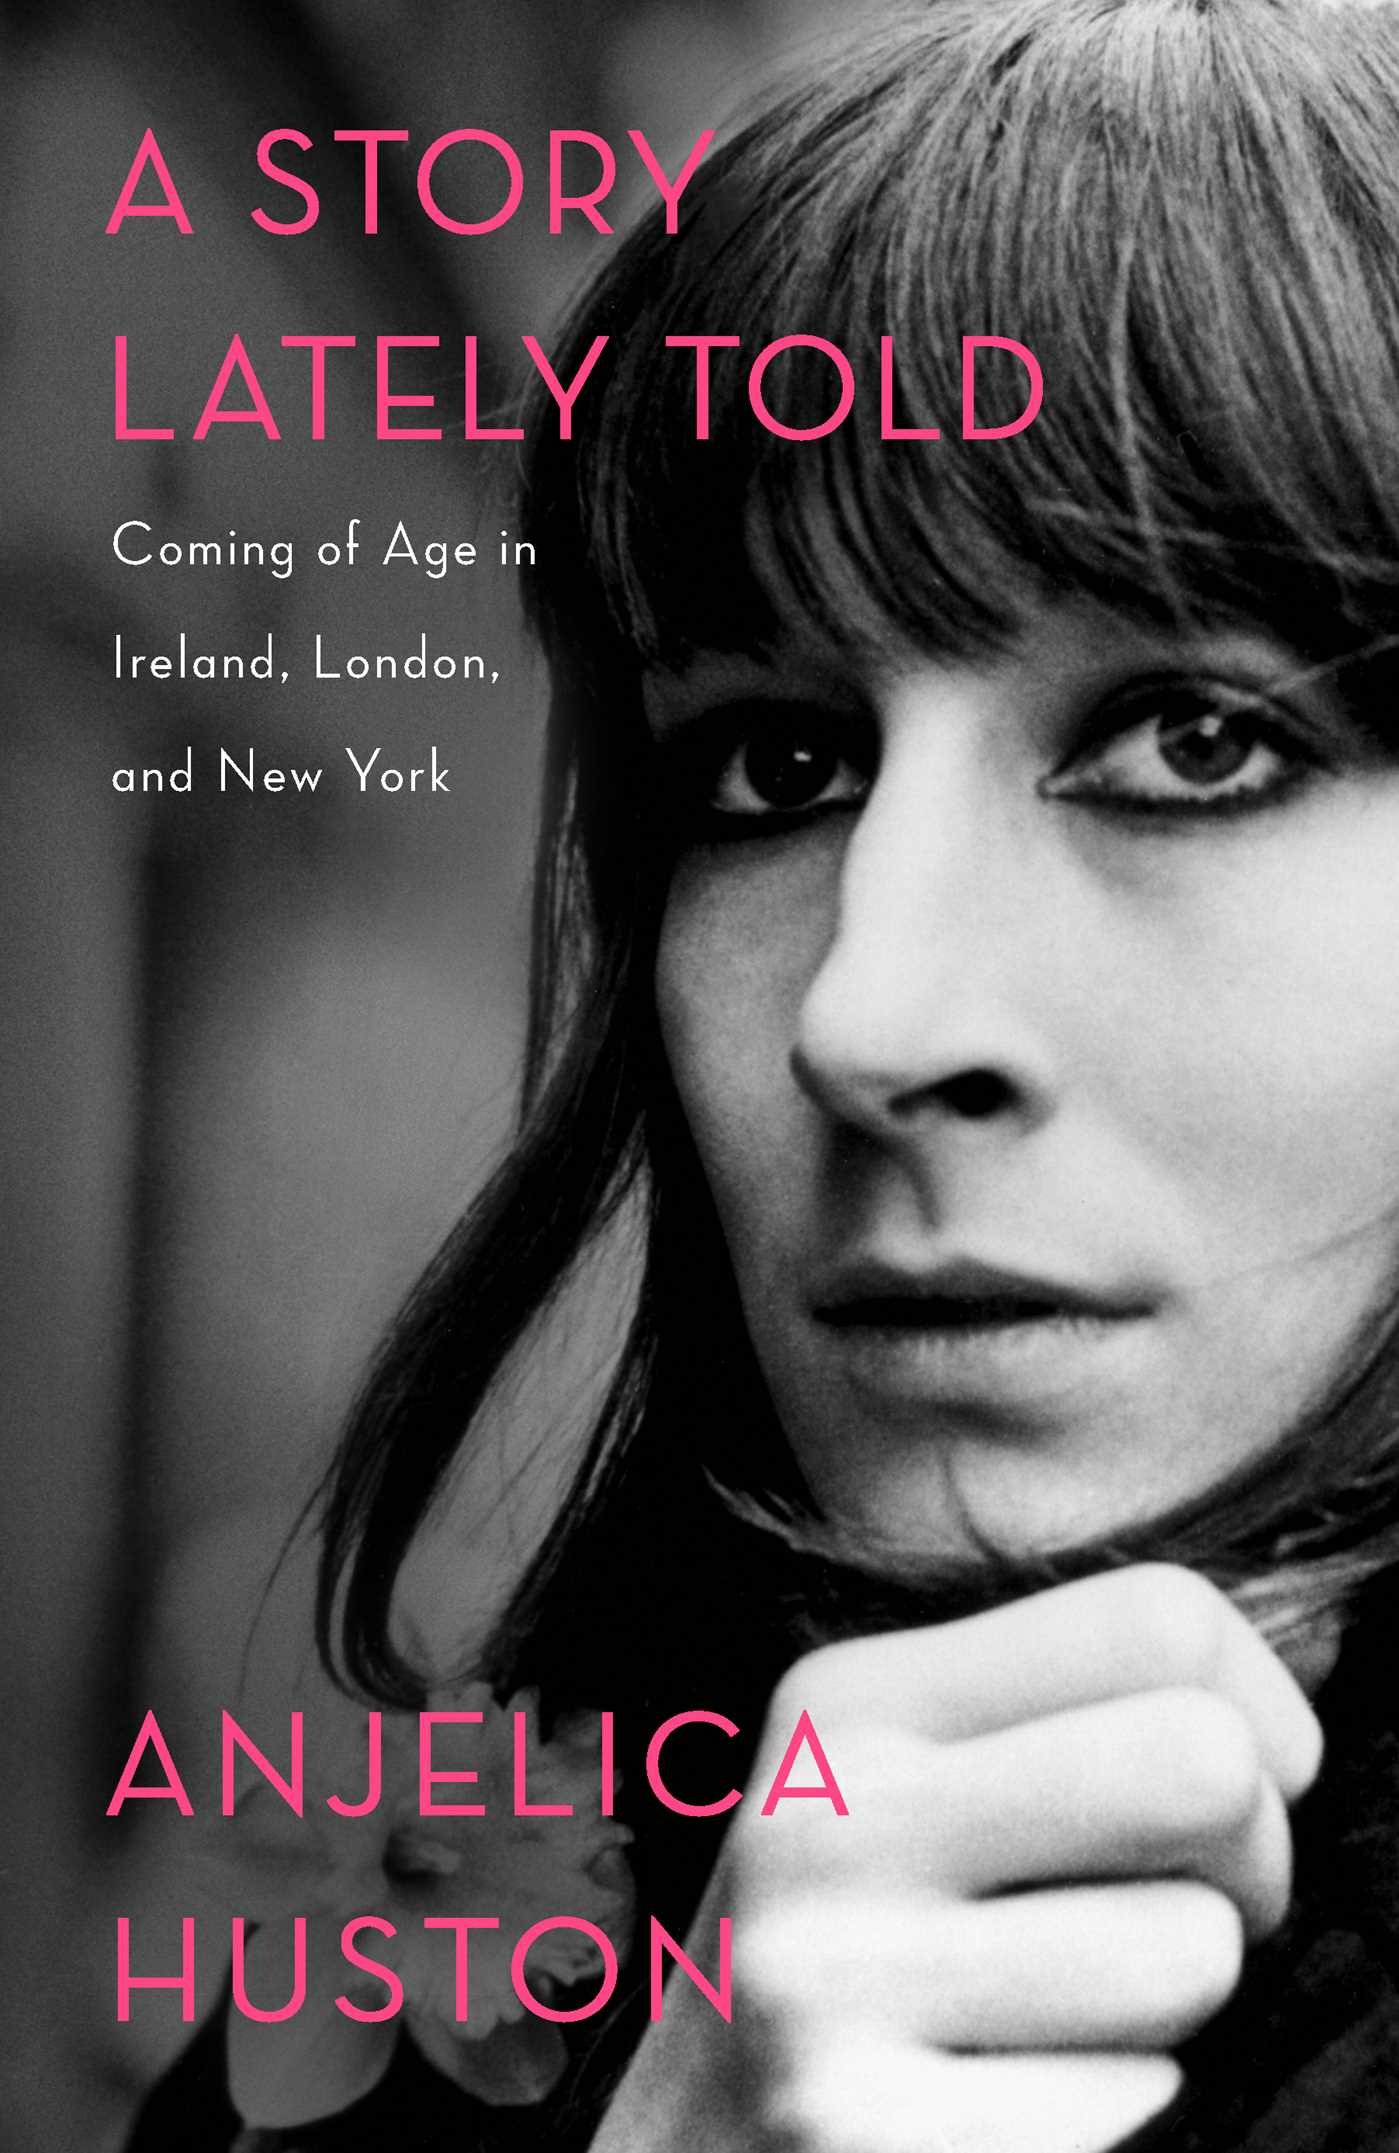 A Story Lately Told: Coming of Age in Ireland, London, and New York ePub fb2 ebook